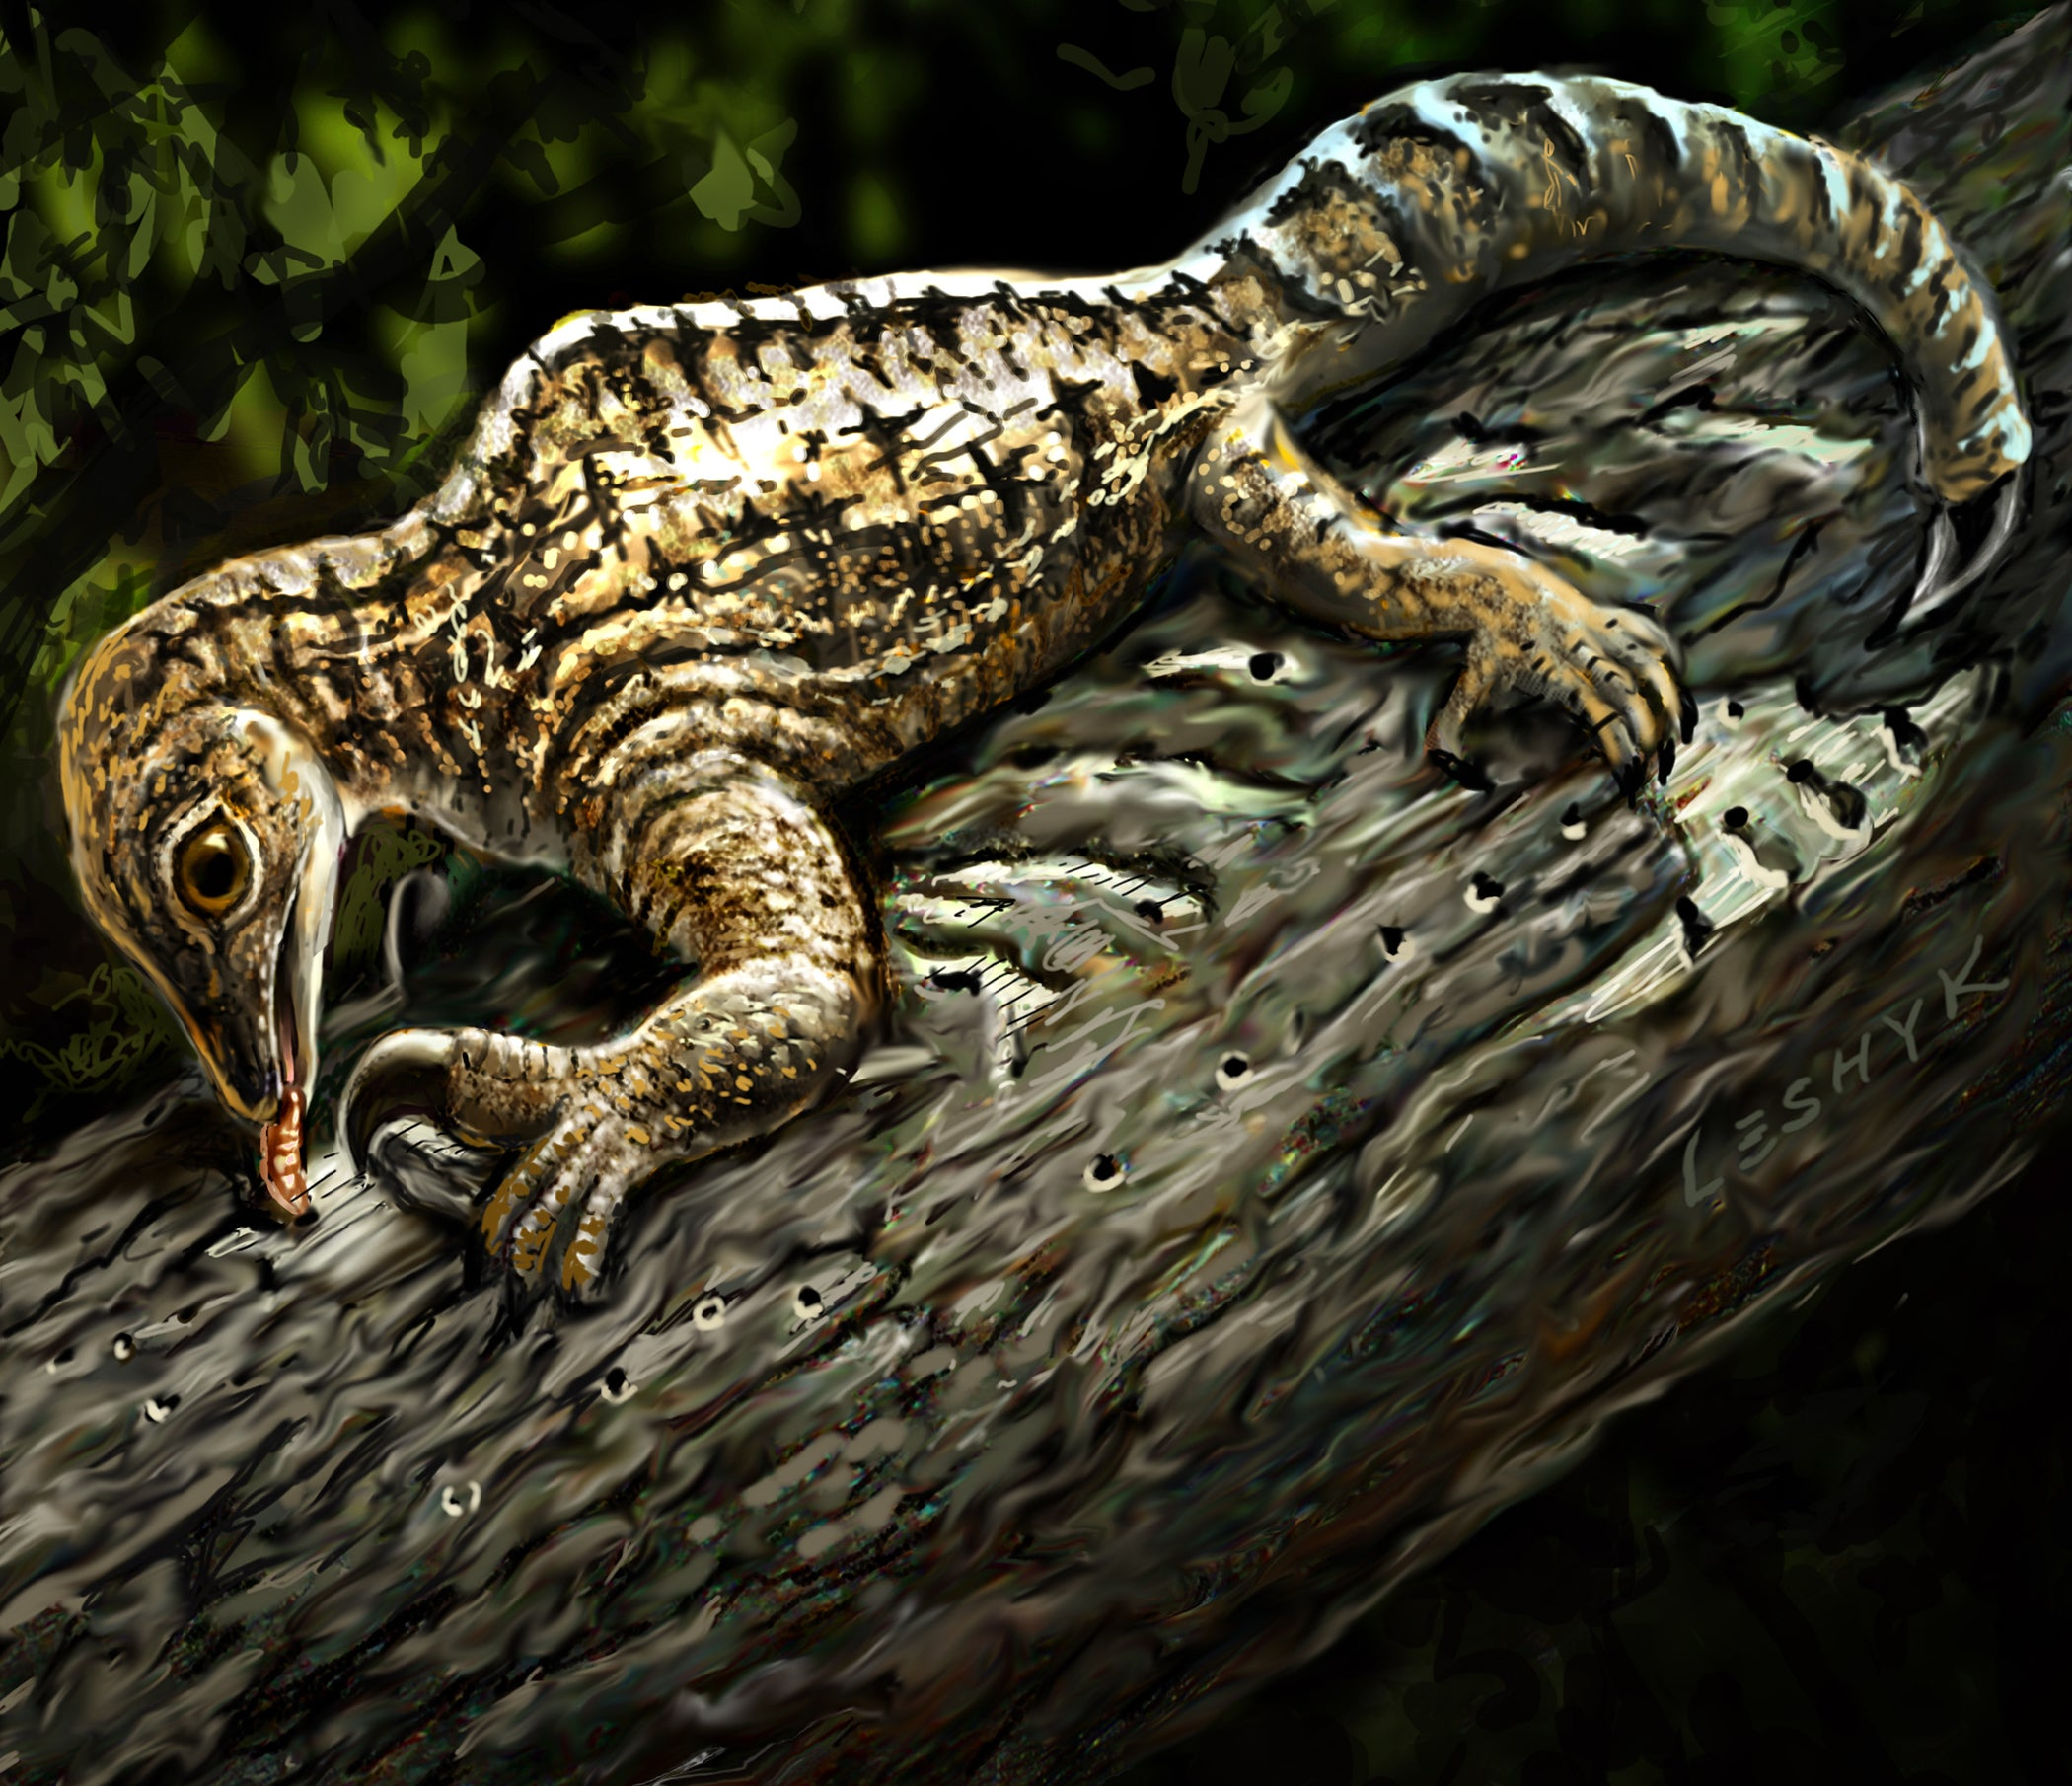 212-Million-Year-Old Reptile Had Anteater-Like Arms